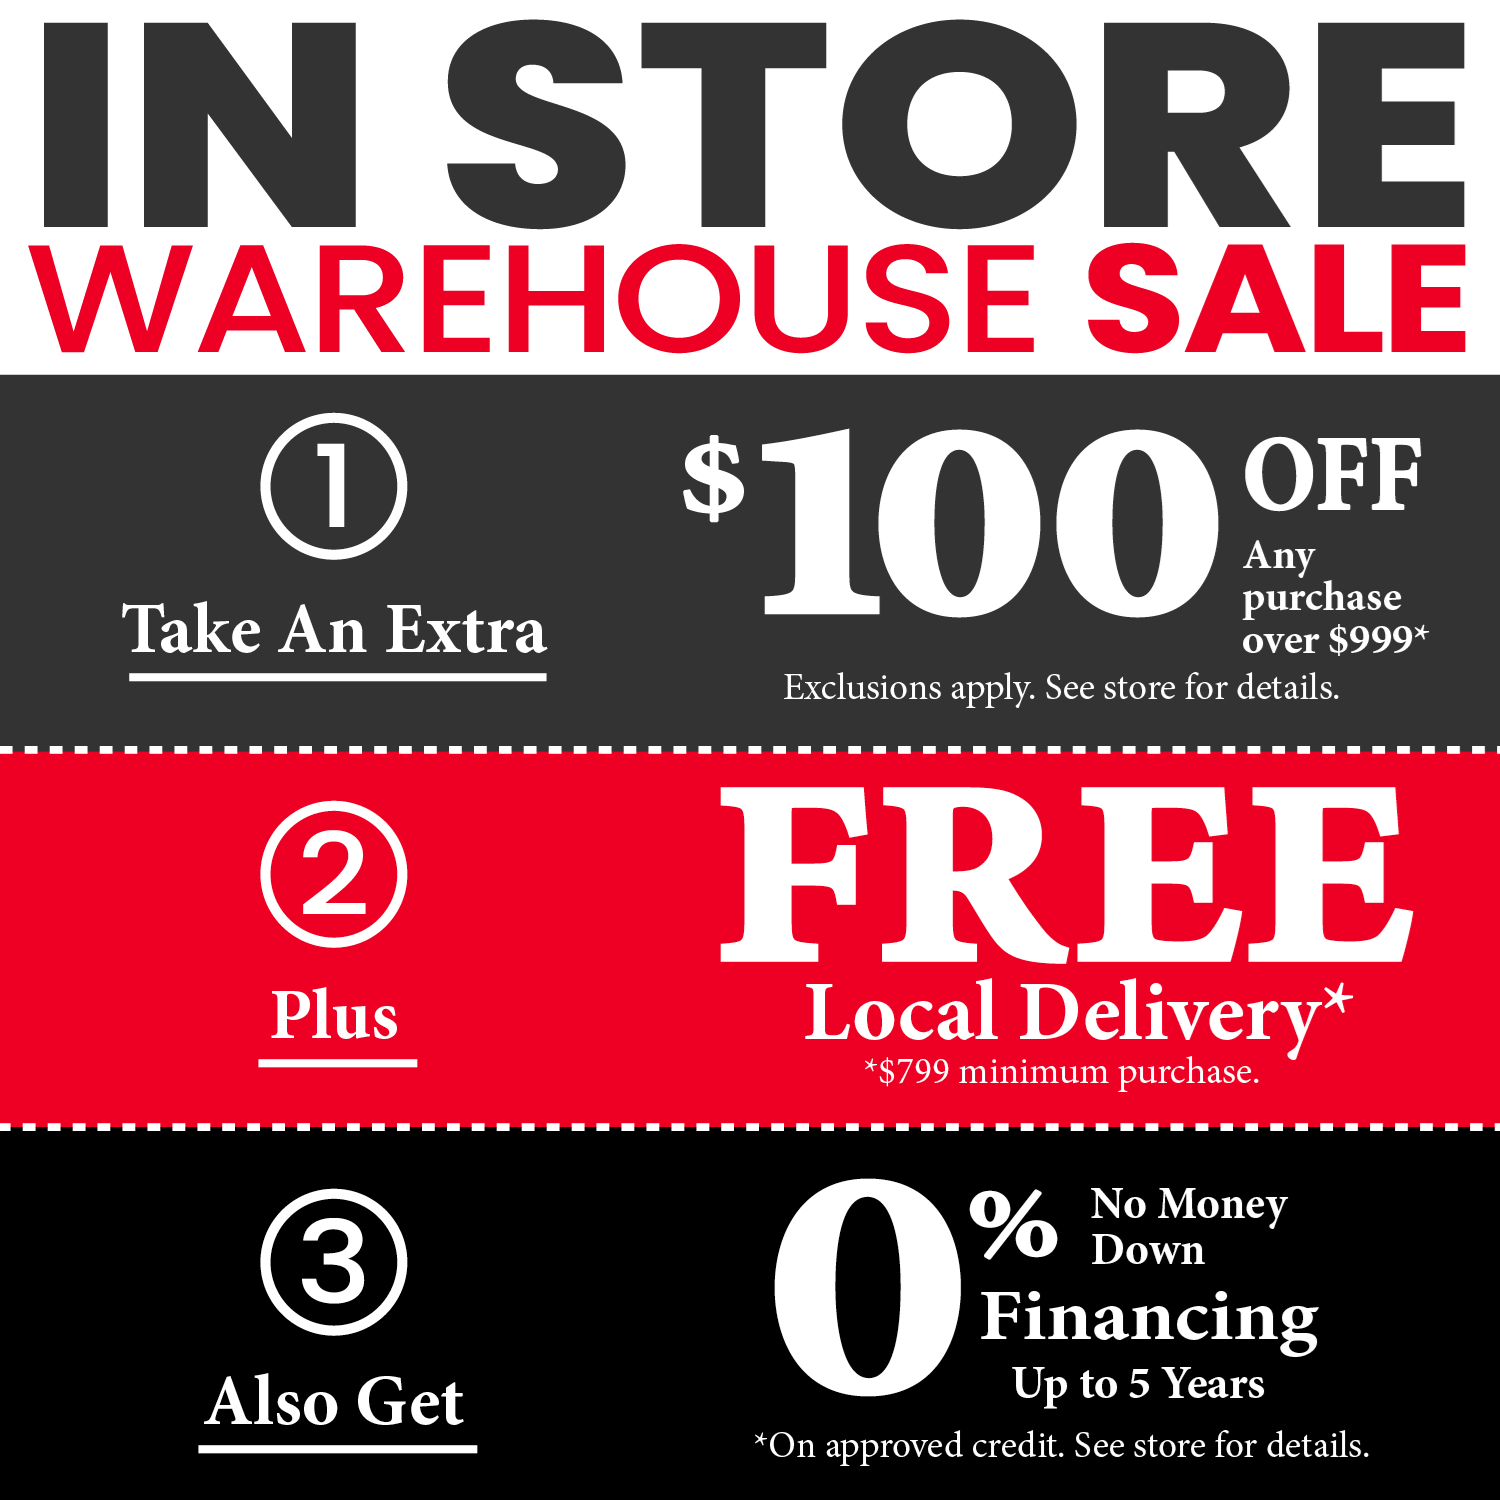 In Store Warehouse Sale